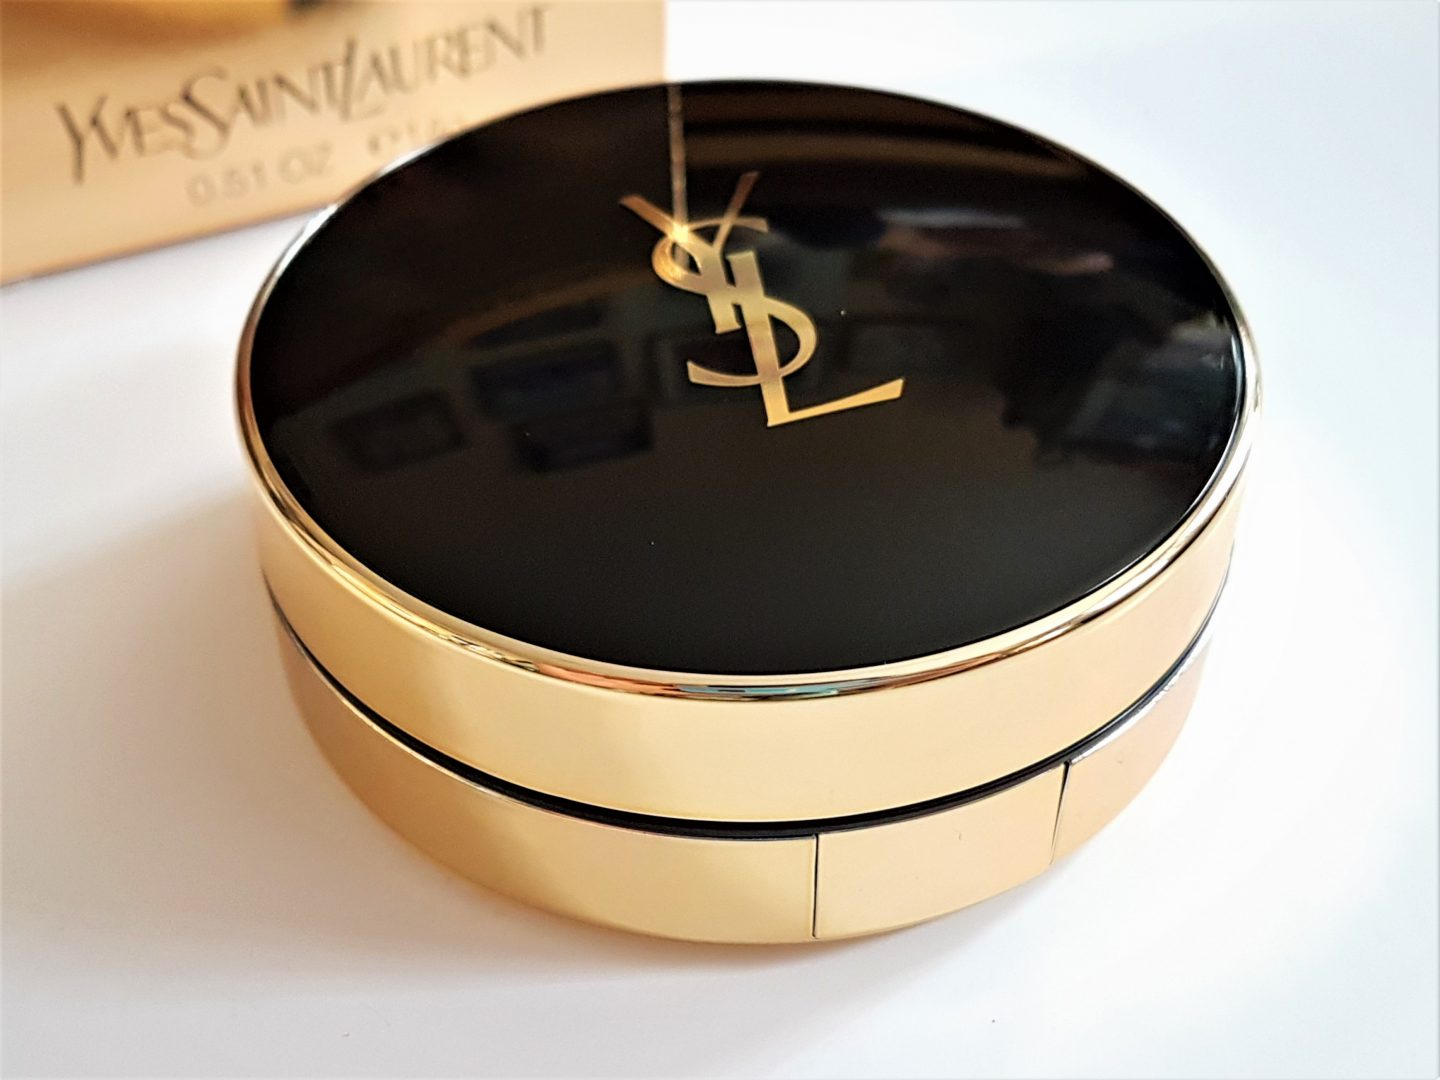 REVIEW: YSL Fusion Ink Cushion Foundation (B30)